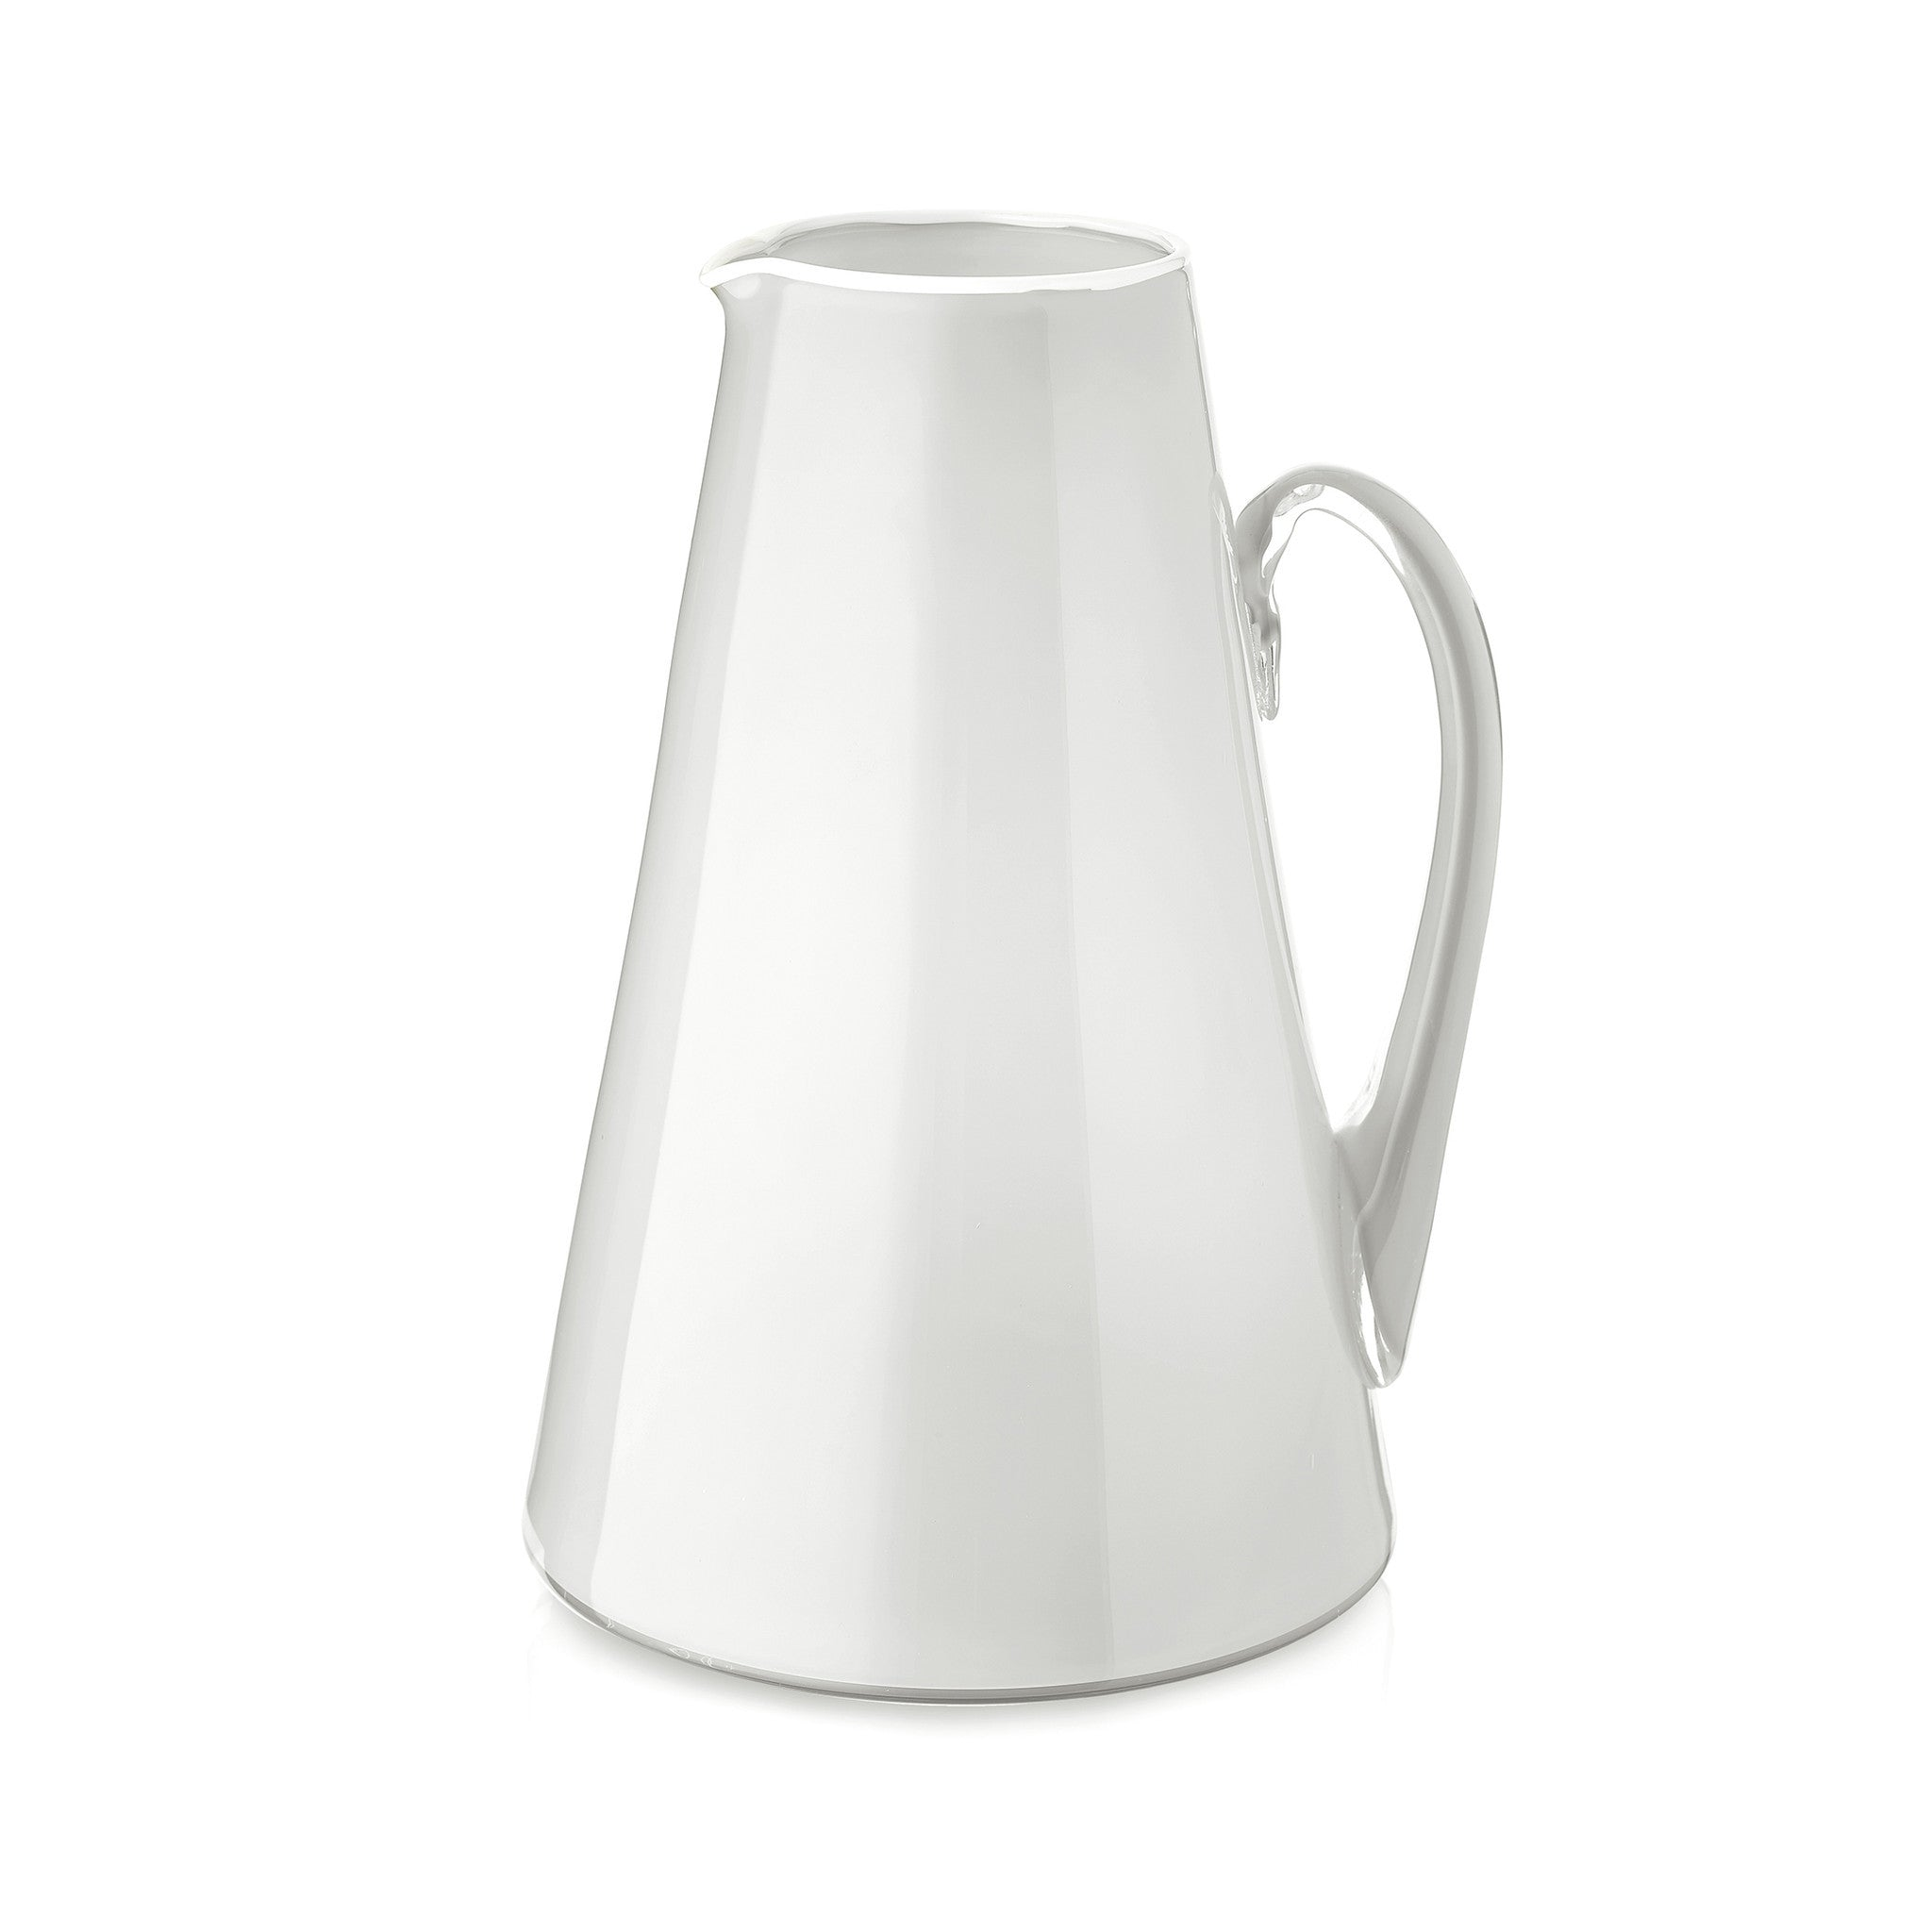 Handblown Glass Bumba Jug in Light Grey